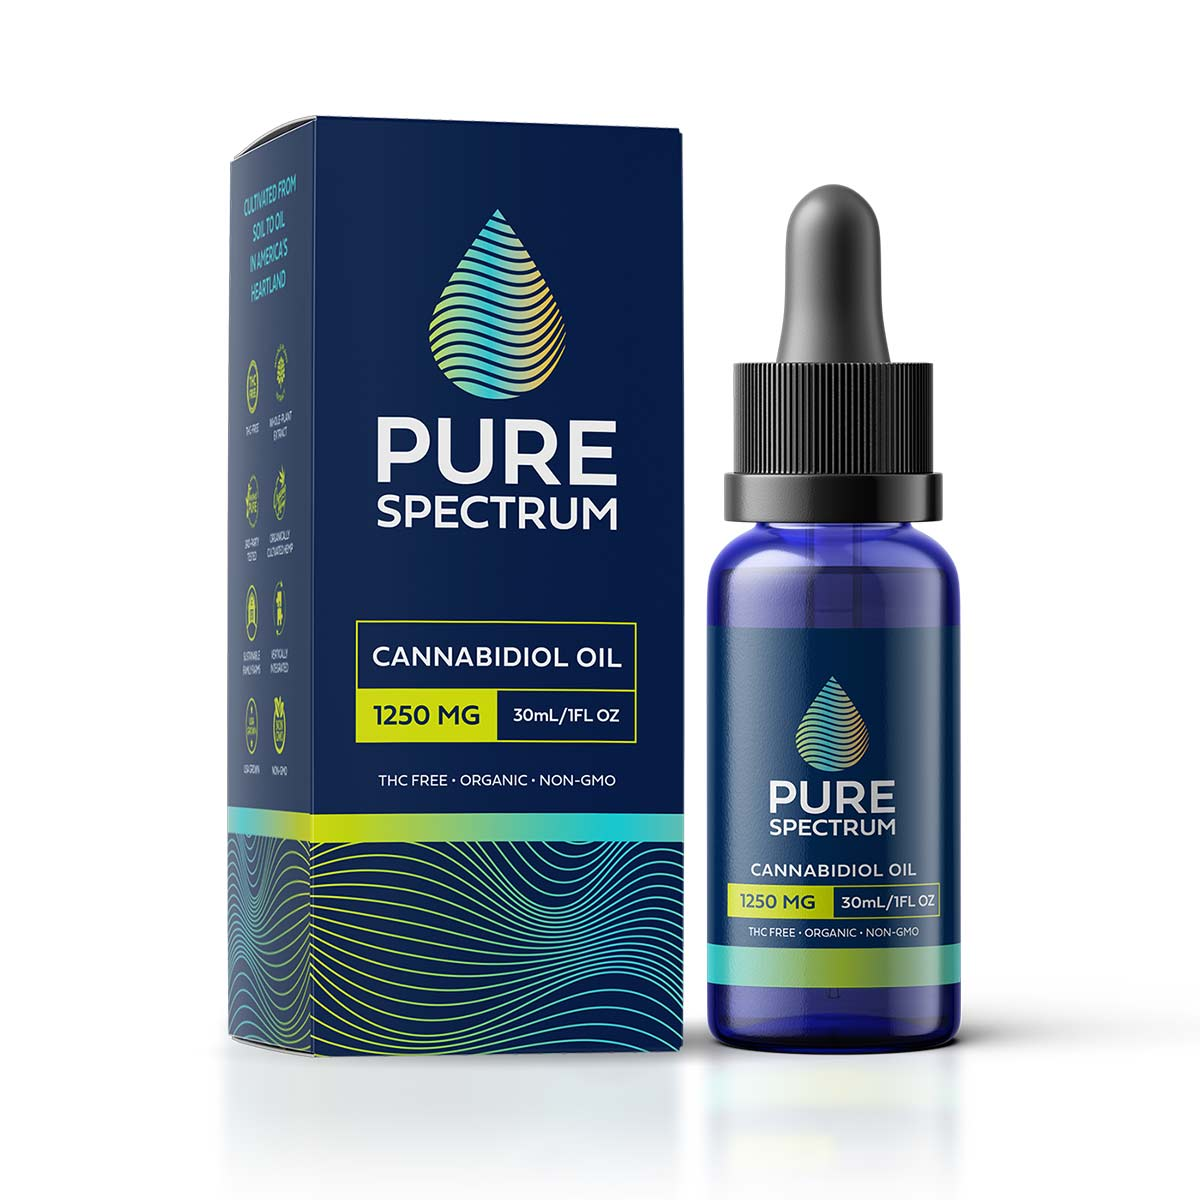 Pure-Spectrum,-CBD-Oil-Tincture,-Cannabidiol-Oil-30ml-1250mg-of-CBD